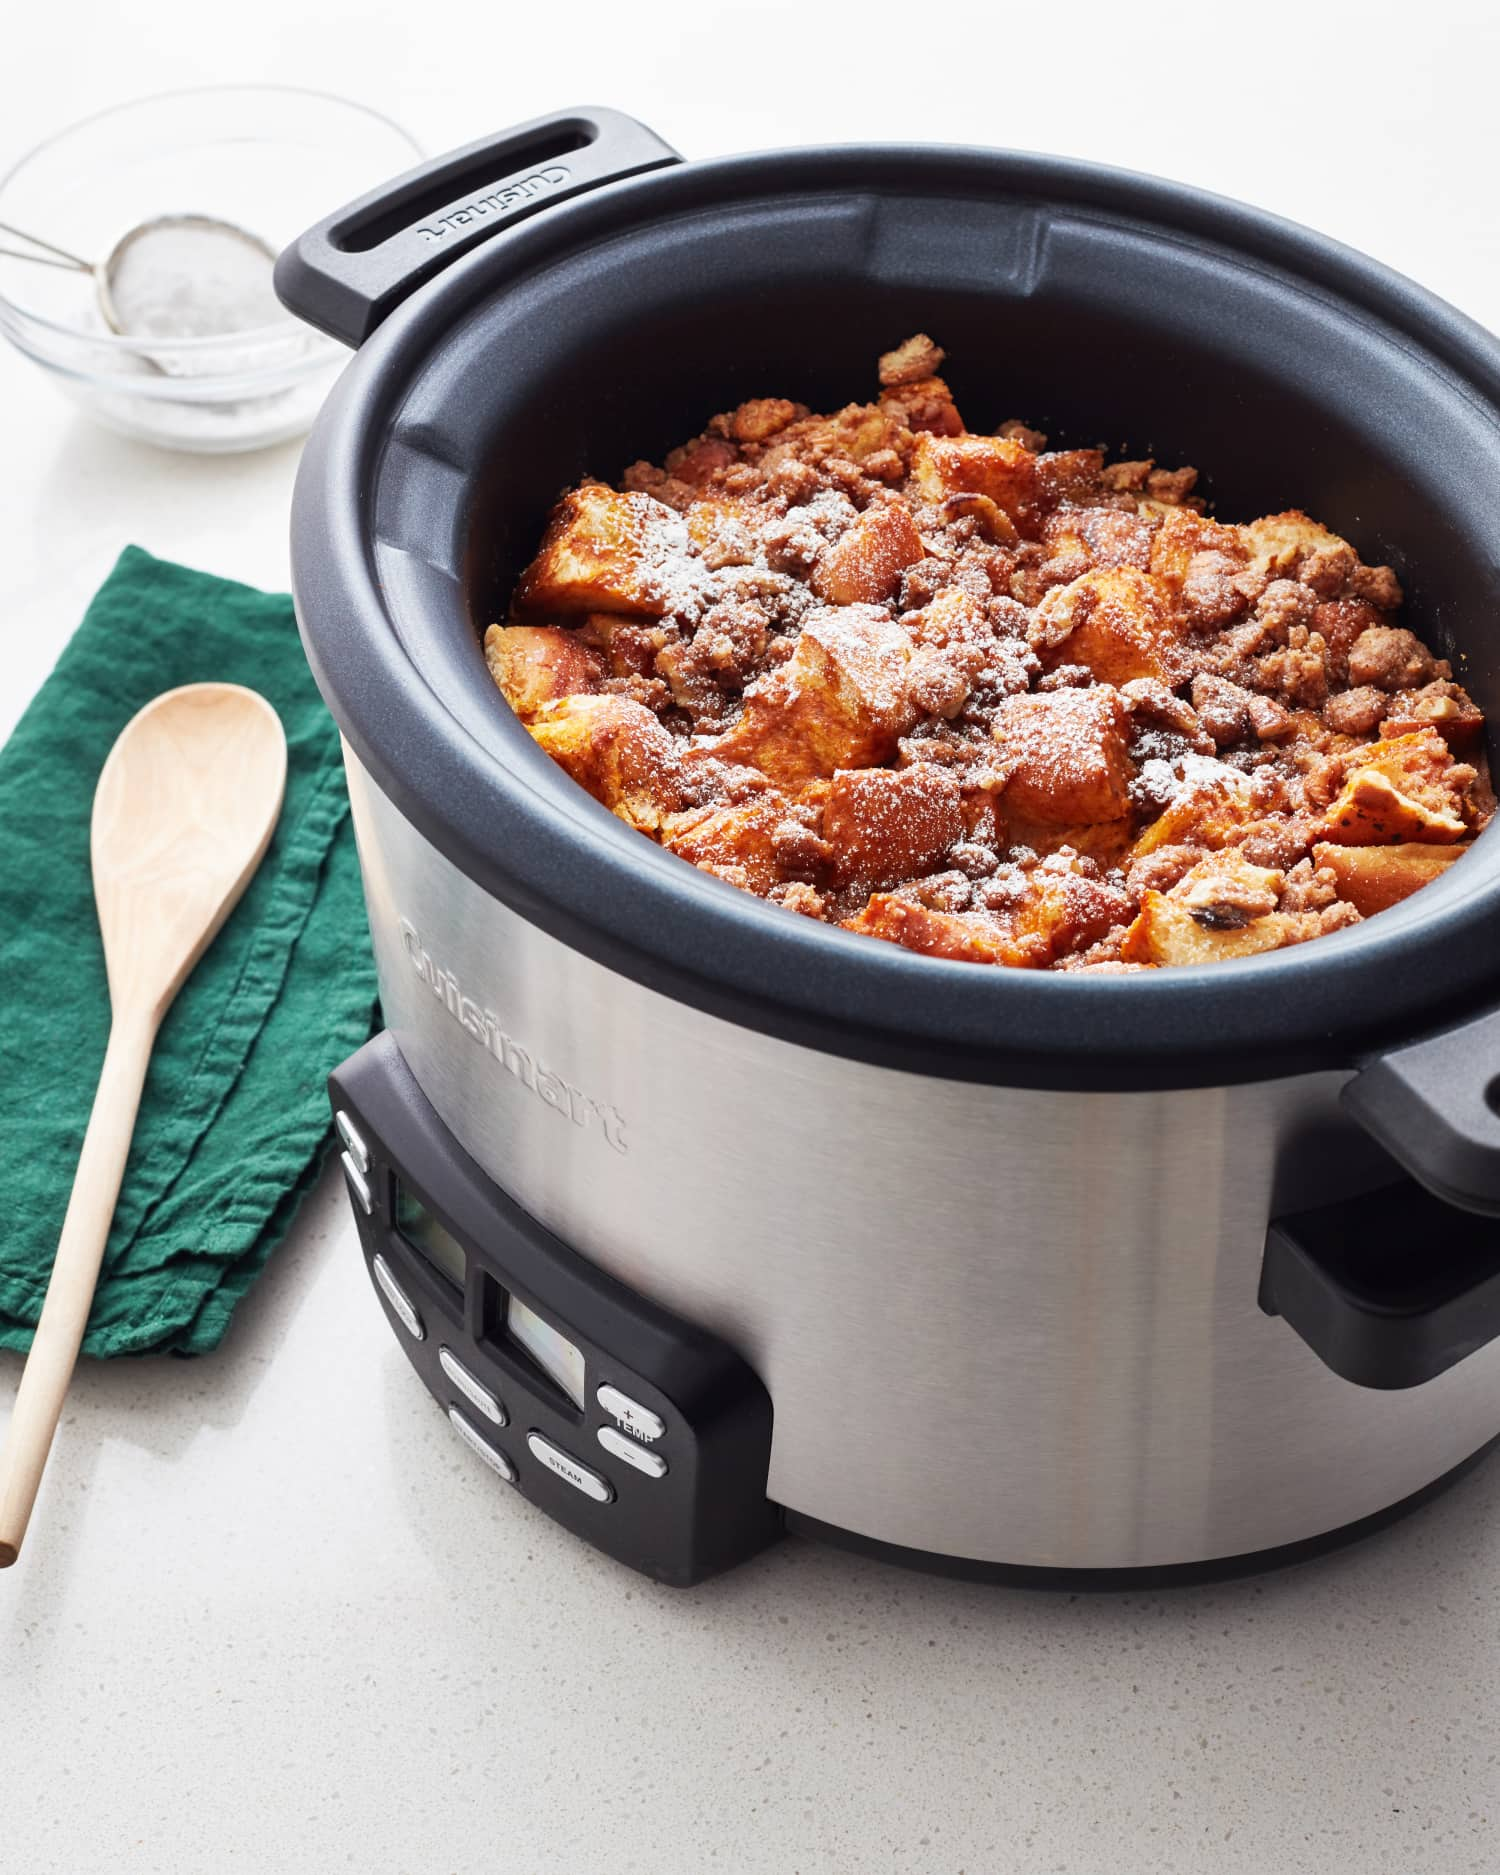 Slow Cooker Breakfast Recipes: 14 Slow Cooker Breakfast Recipes That Won't Stress You Out